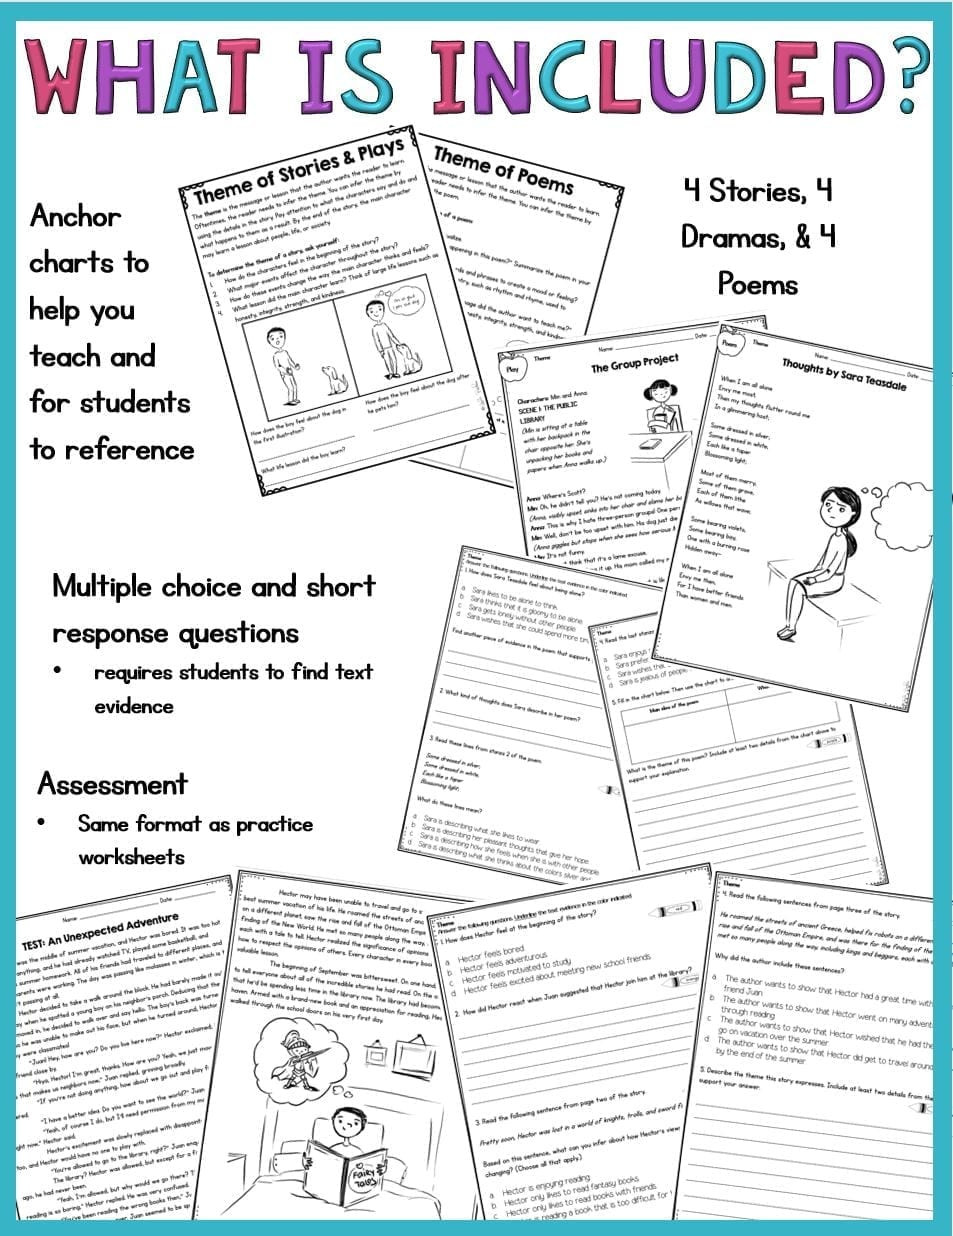 Theme Worksheets for 5th Grade theme In Stories Plays and Poems 4th Grade Rl 4 2 and 5th Grade Rl 5 2